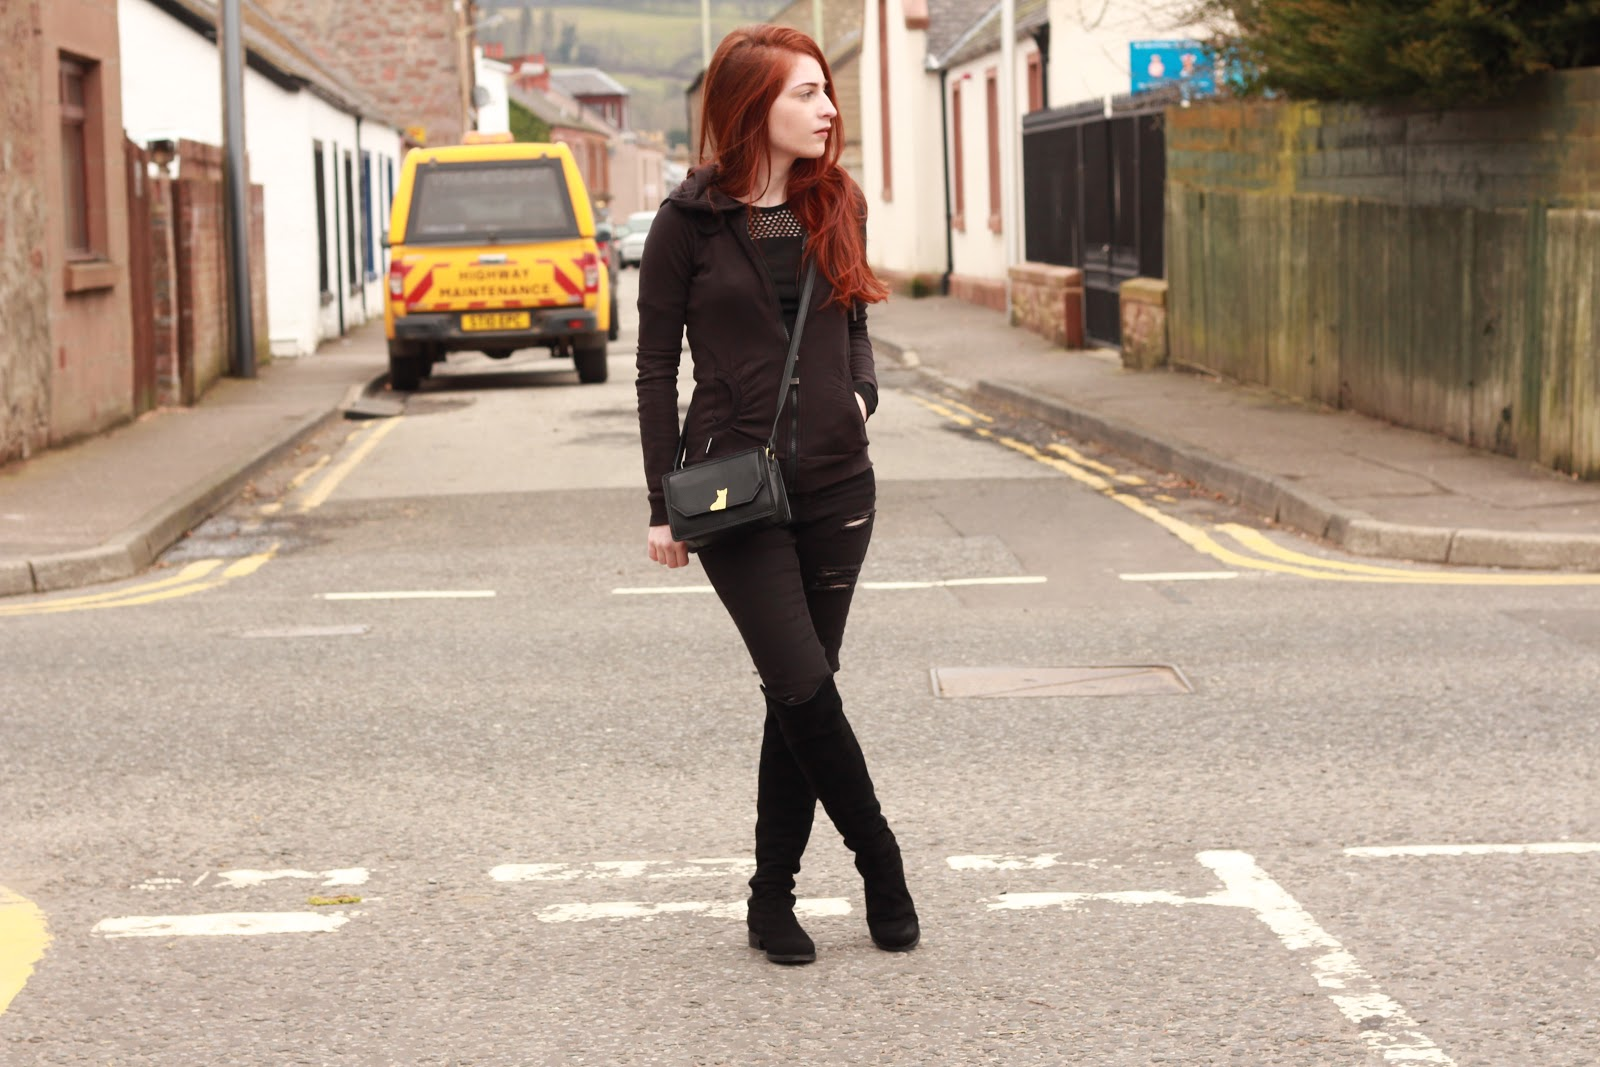 onepiece, stuart weitzman 50/50, asos petite ridley ripped jeans, river island,